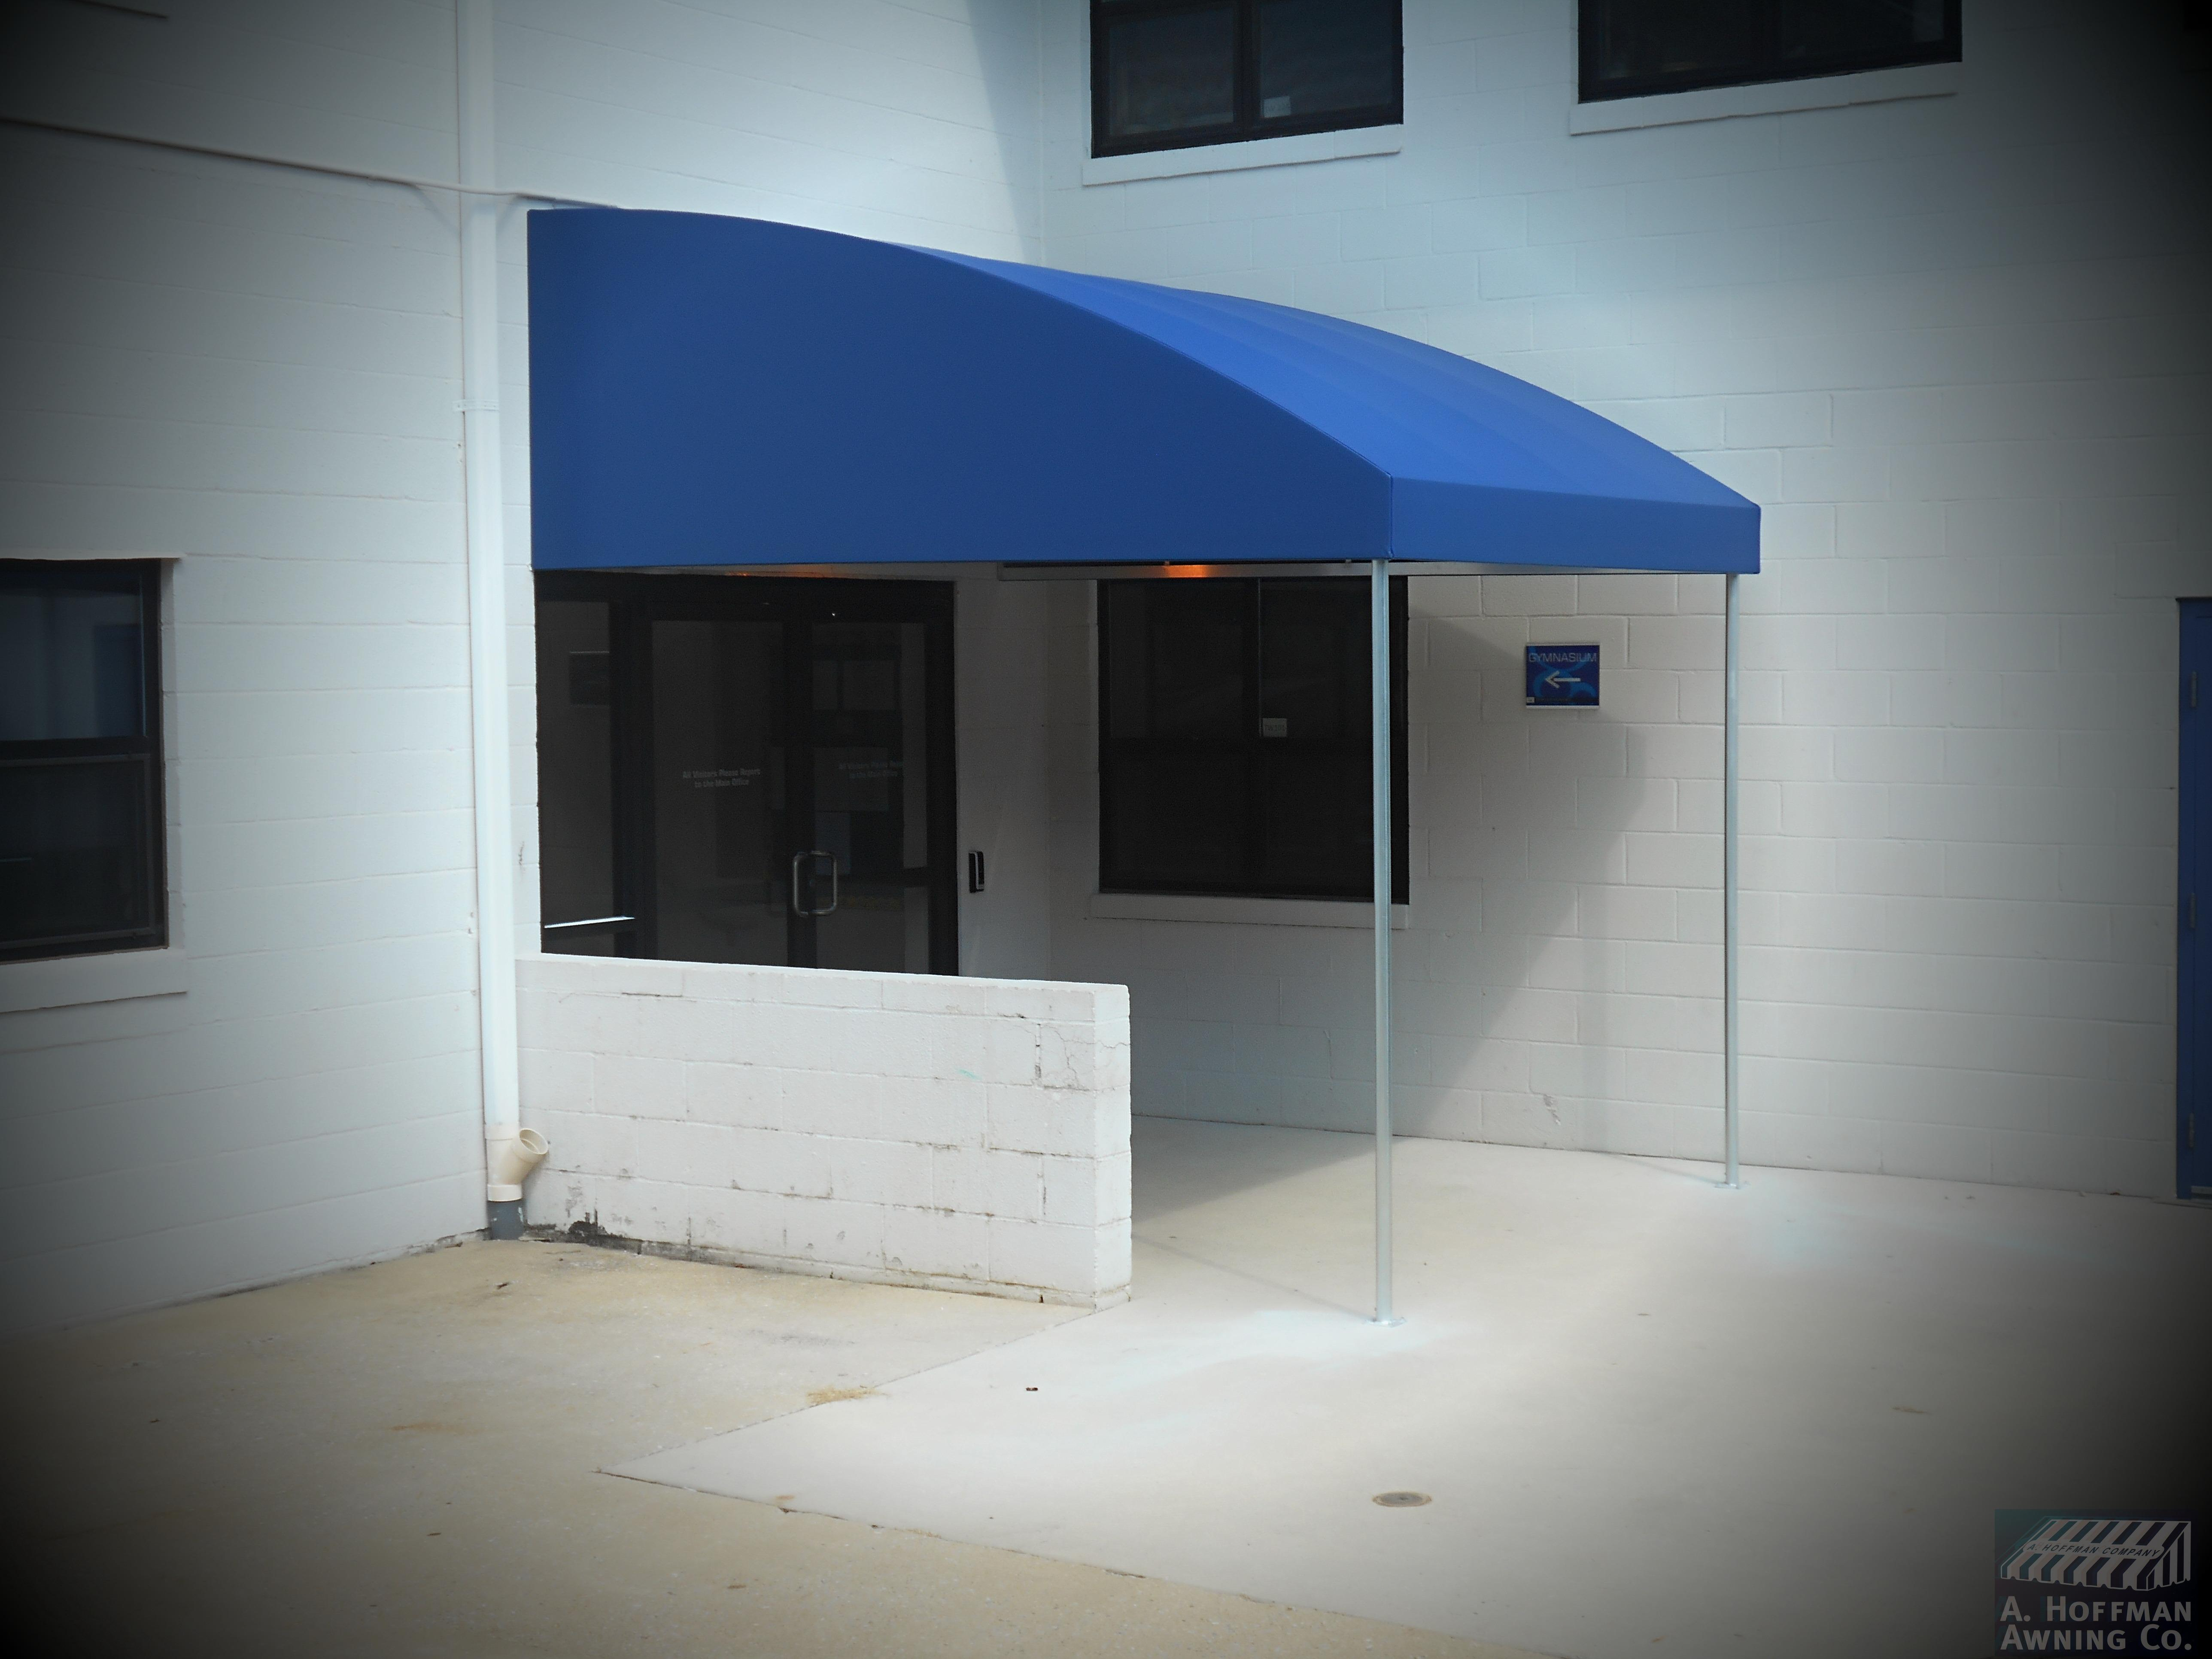 A. Hoffman Awning in Baltimore     410-685-5687     An elegant ramp awning on a building will be greatly appreciated.